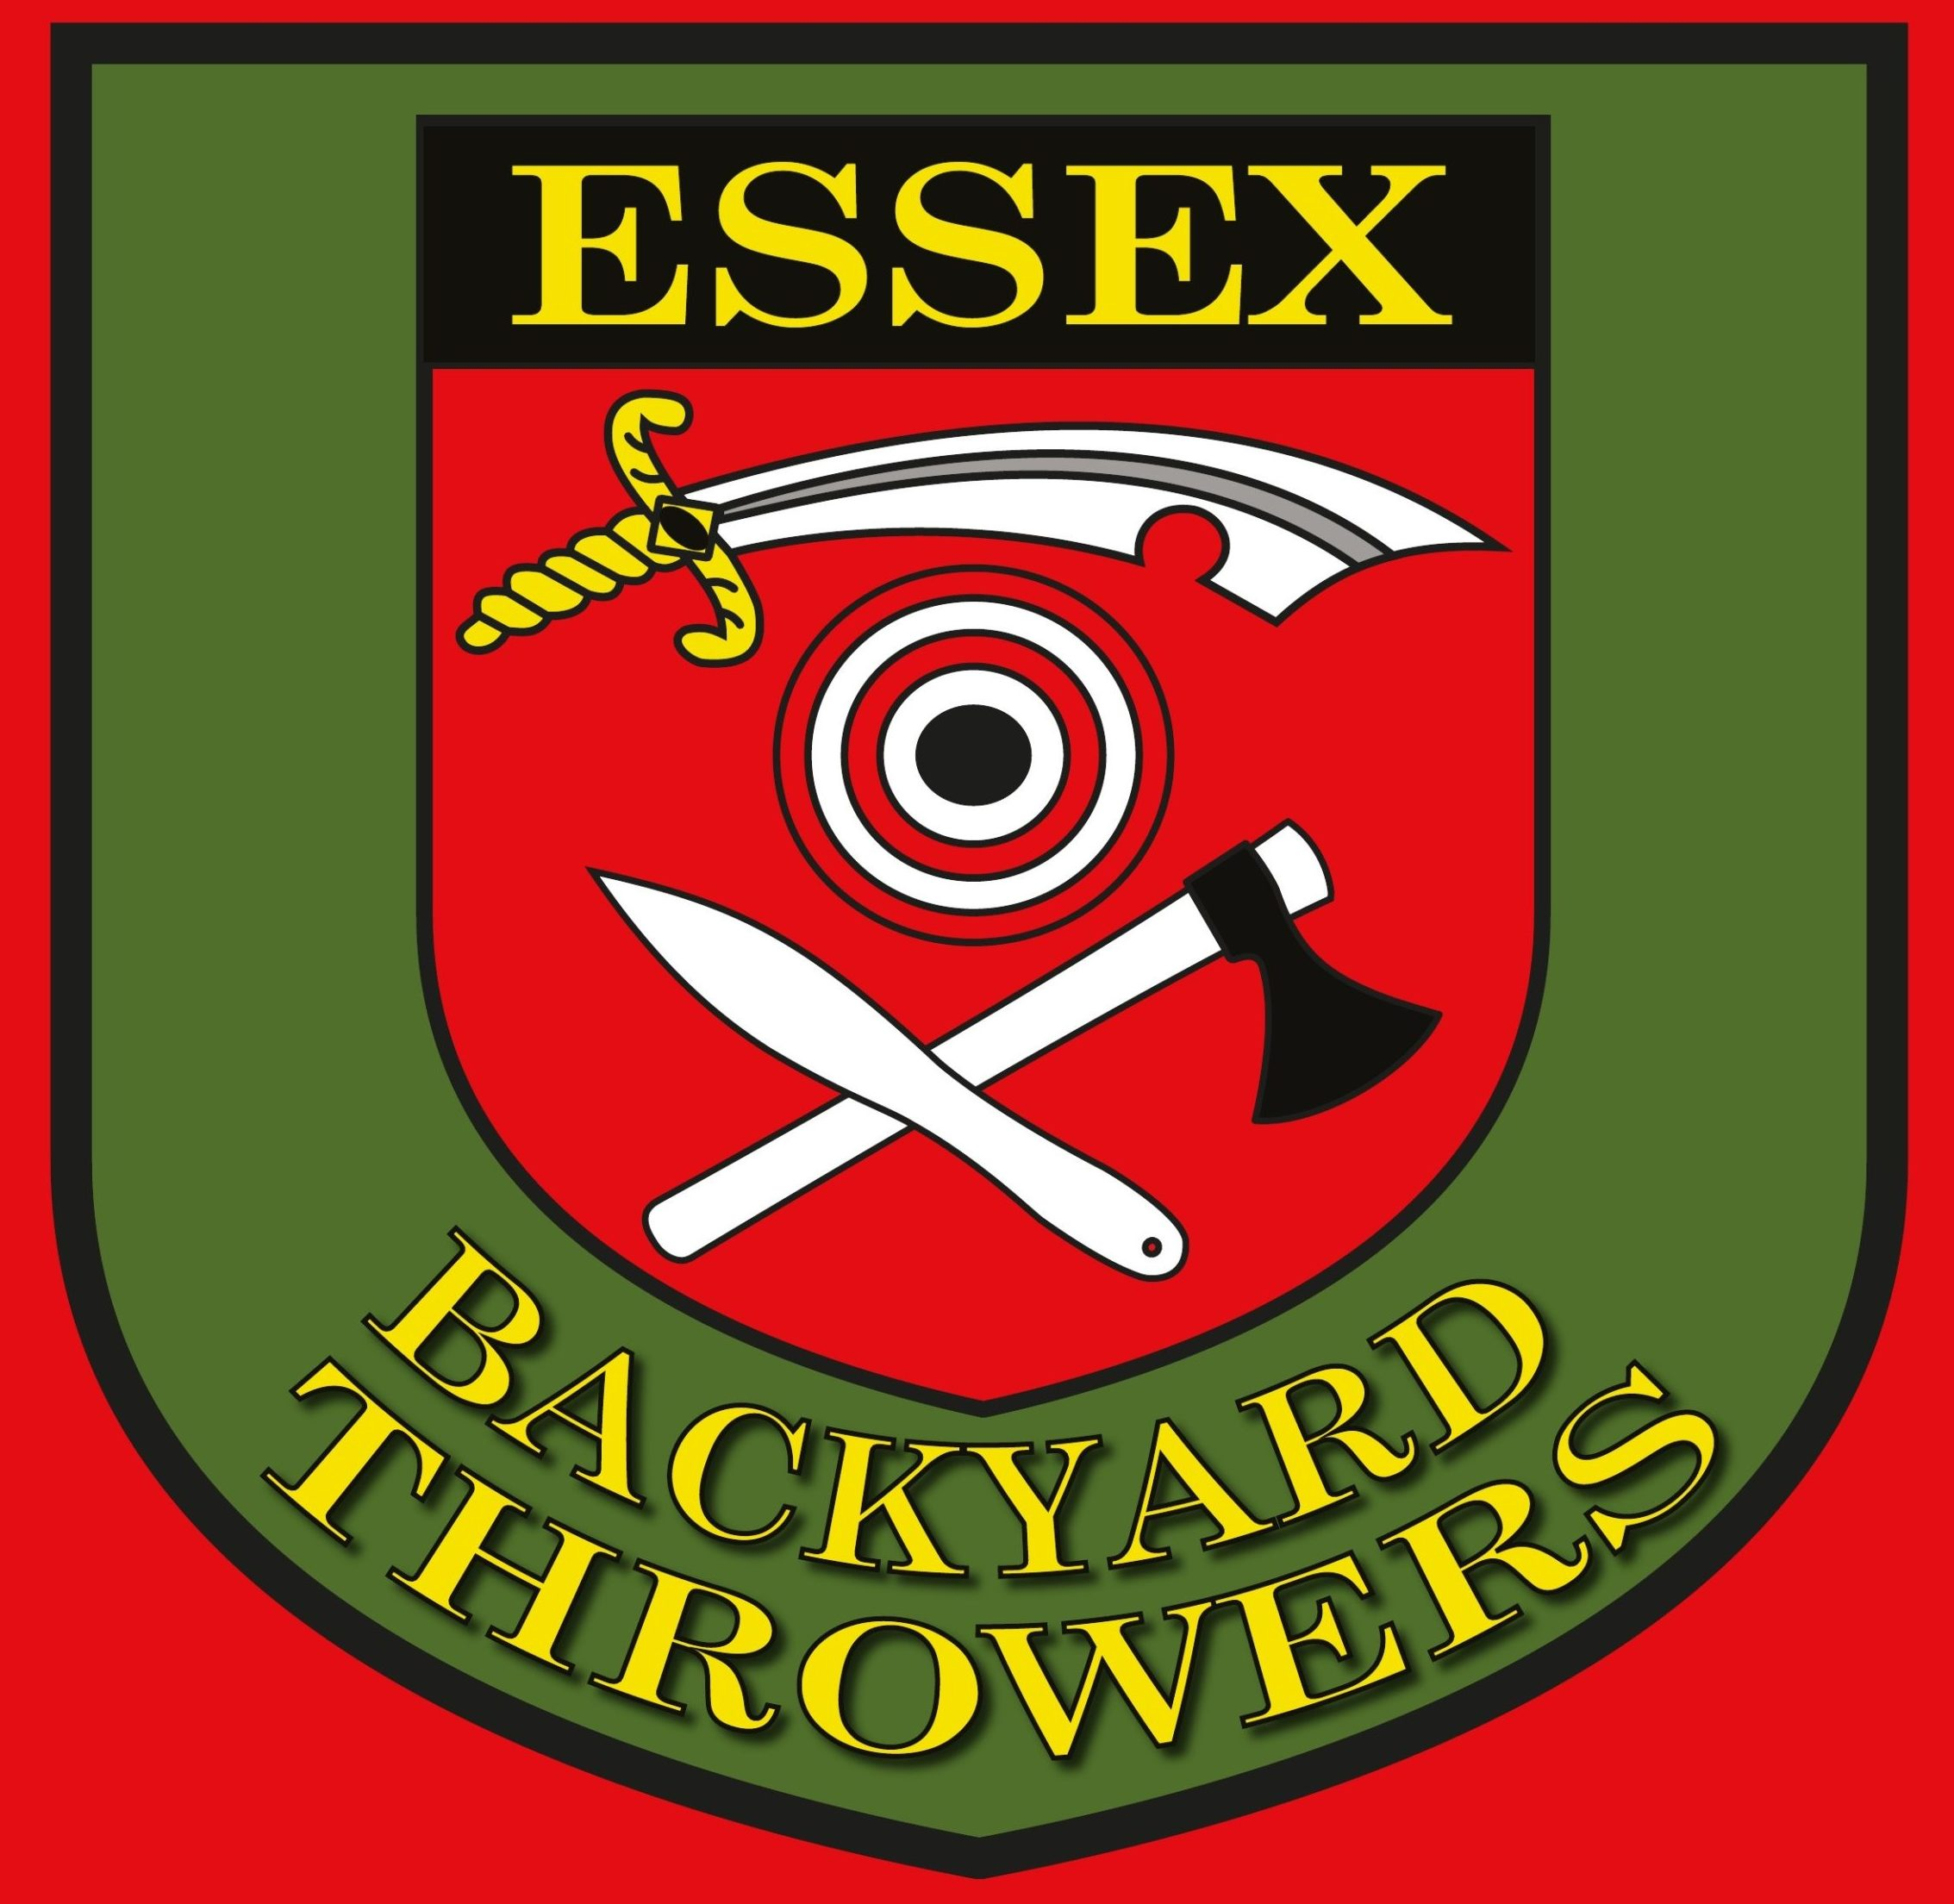 Essex Backyard Throwers